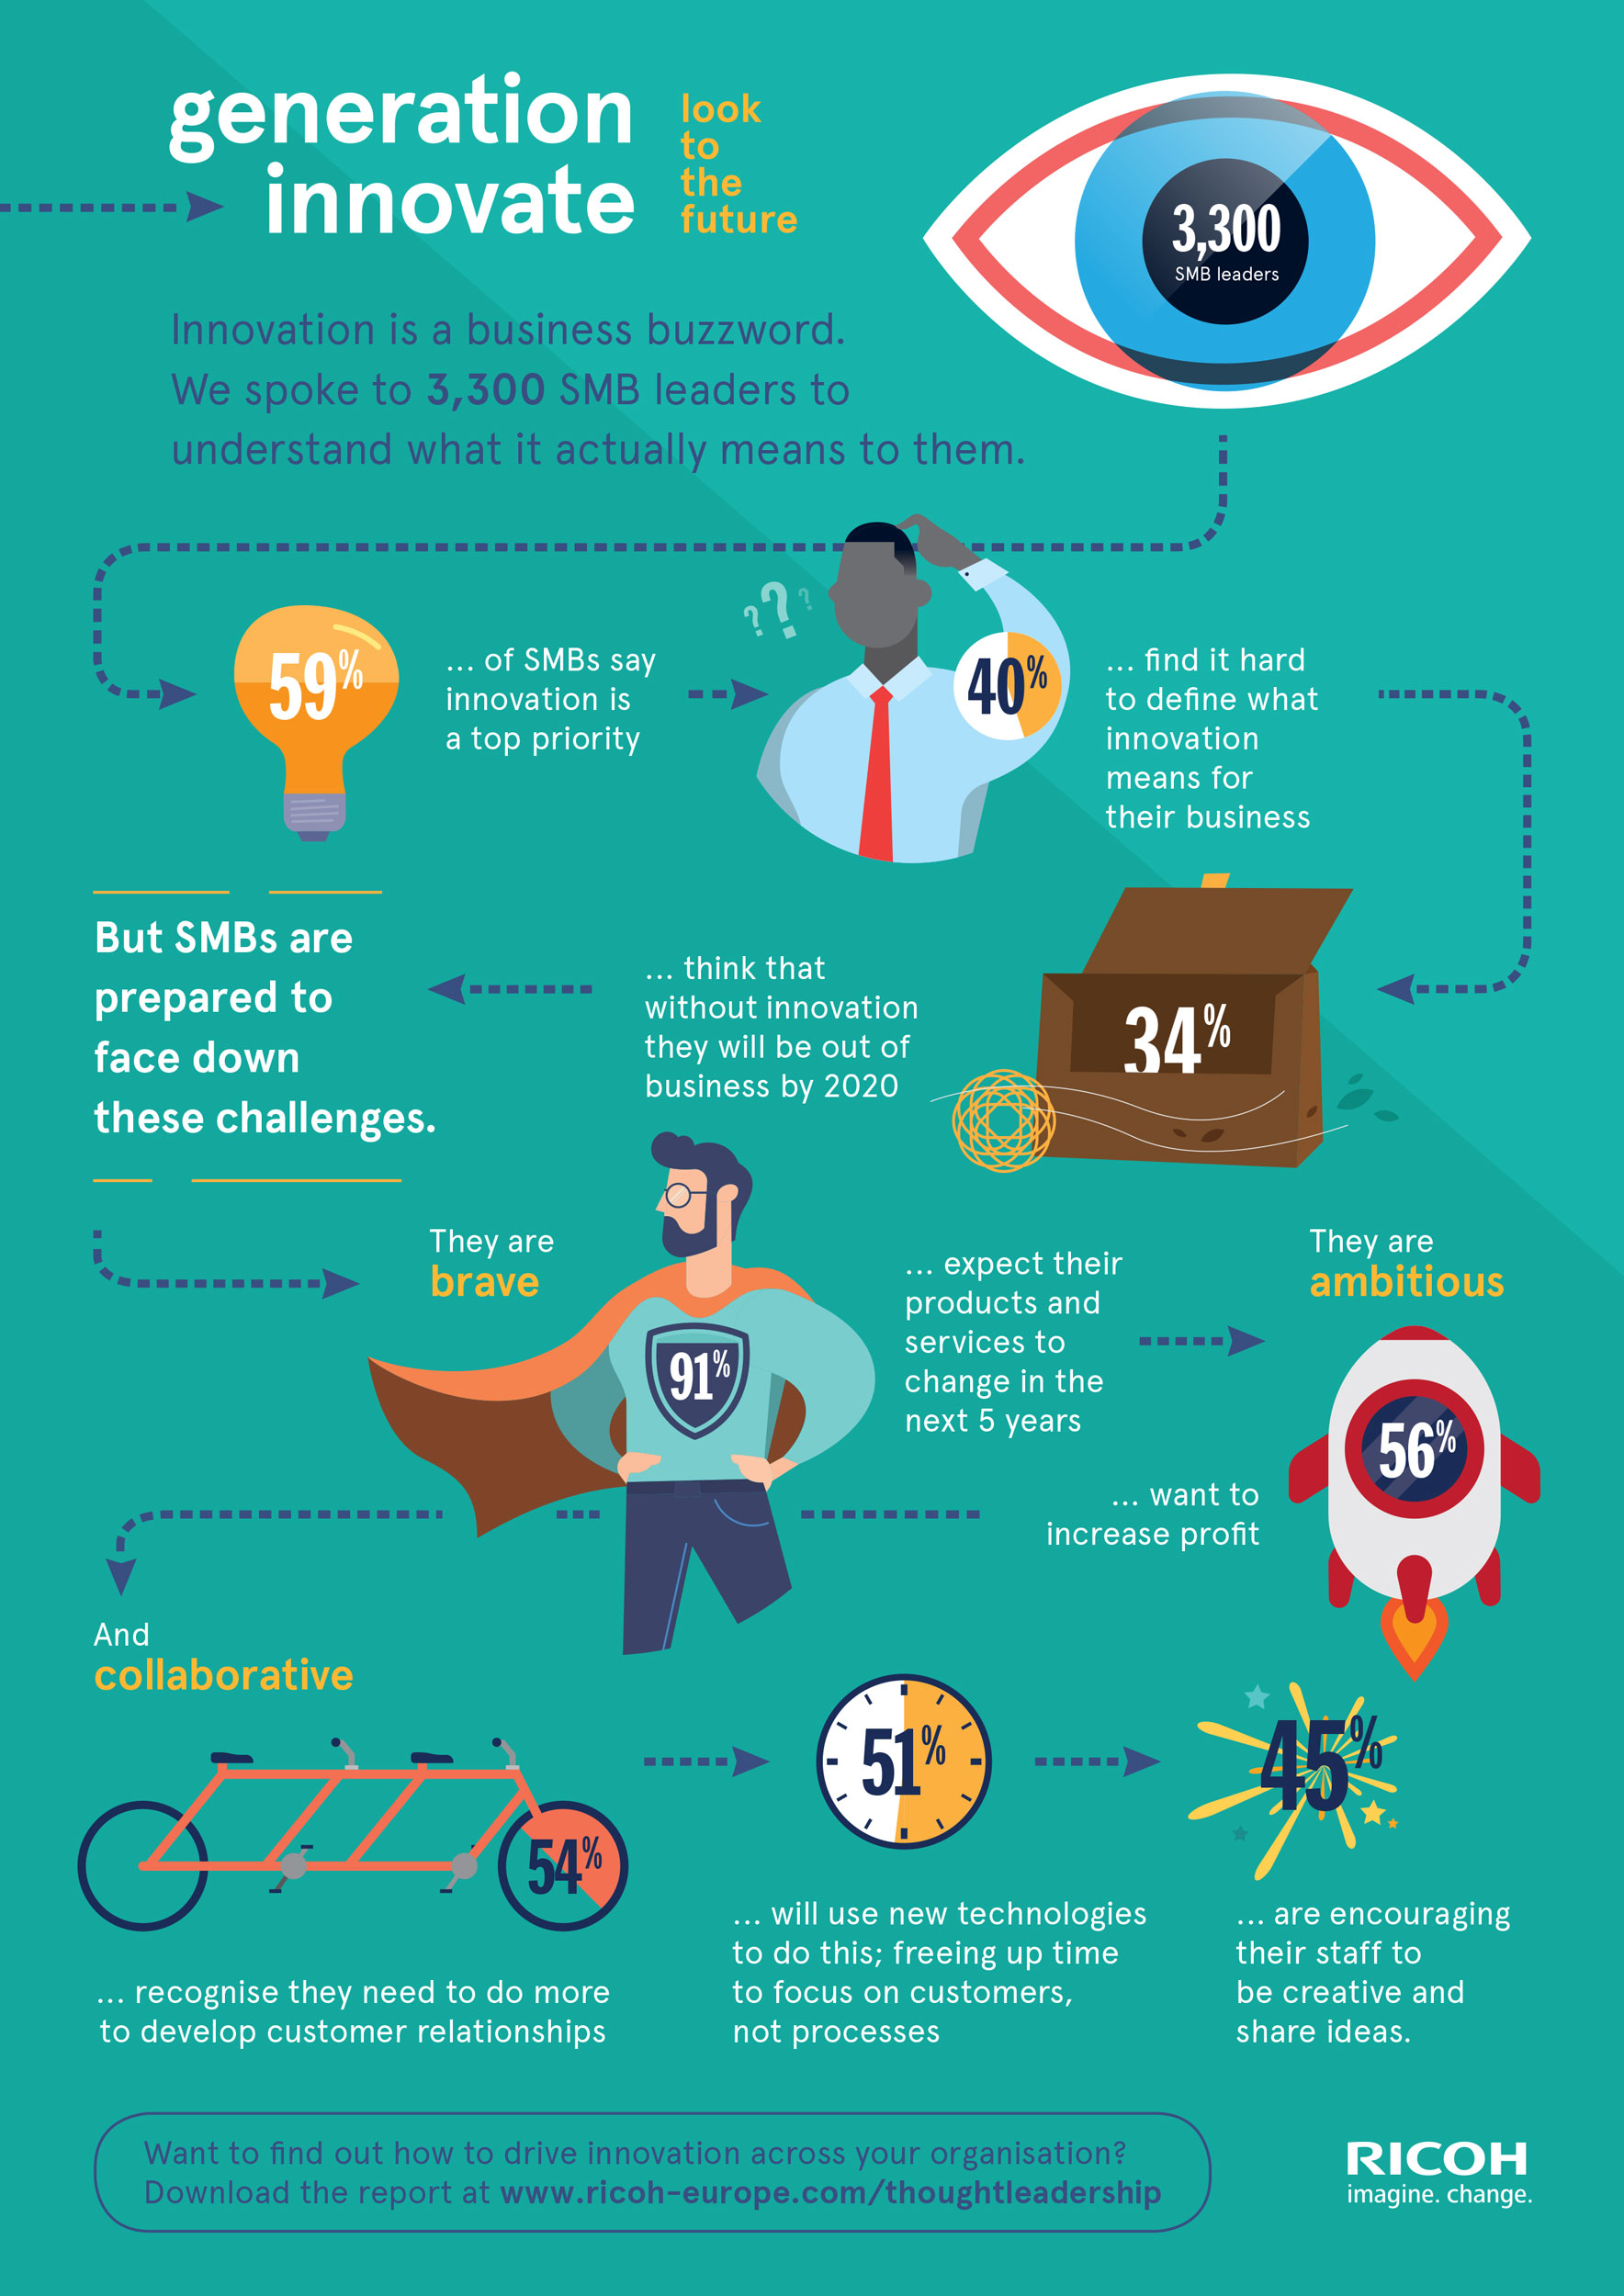 Generation-Innovate-Infographic-EU_tcm100-34923